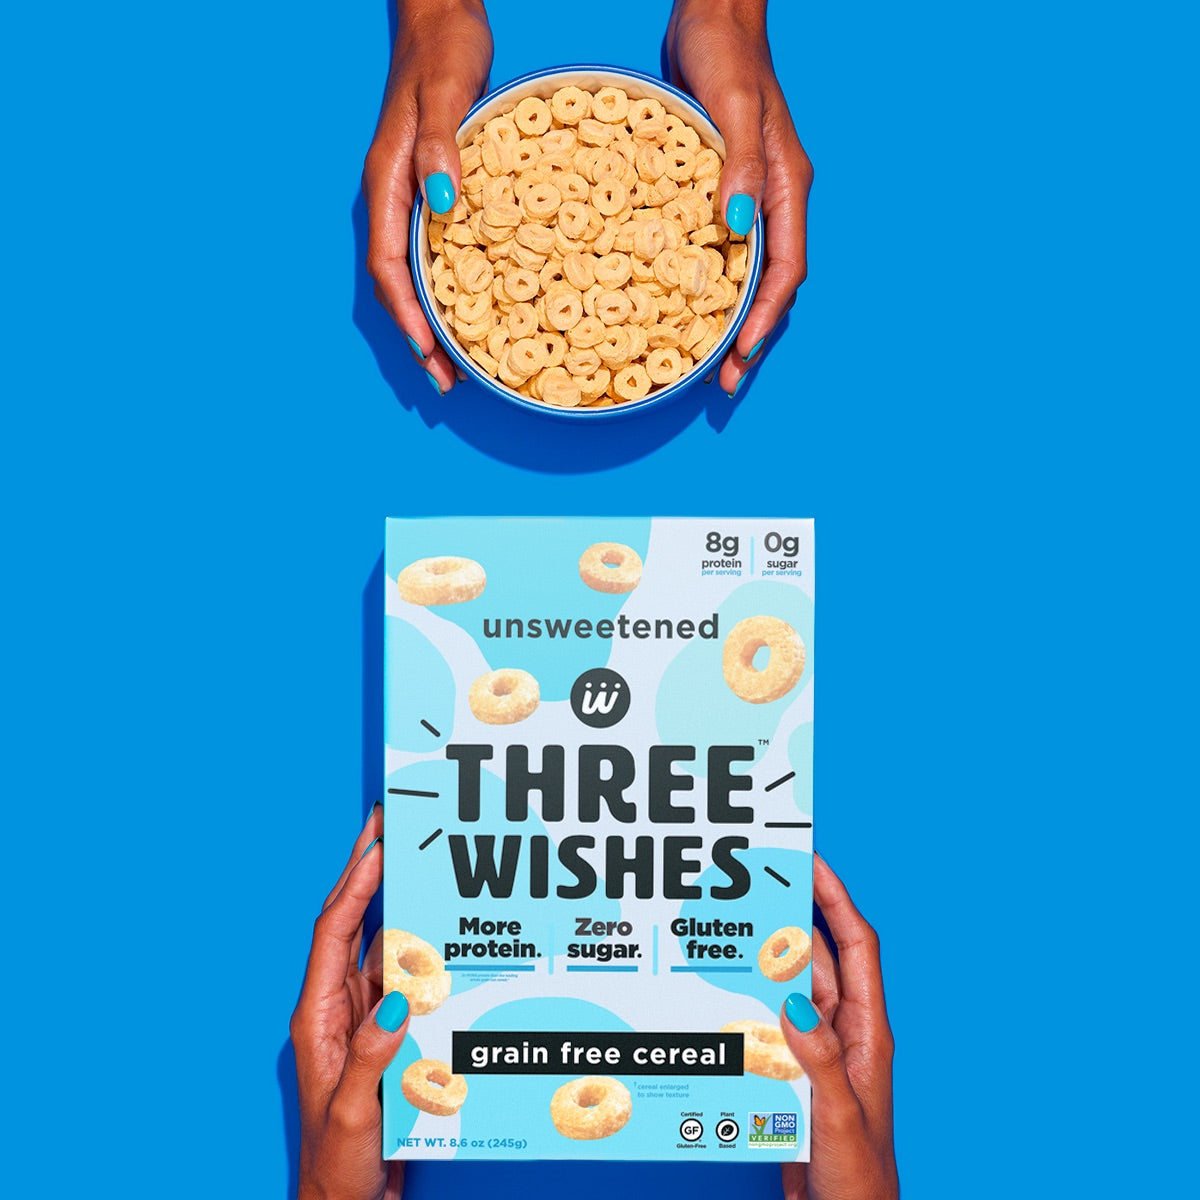 The unsweetened cereal by Three Wishes Creal held up by a pair of hands against a blue background.